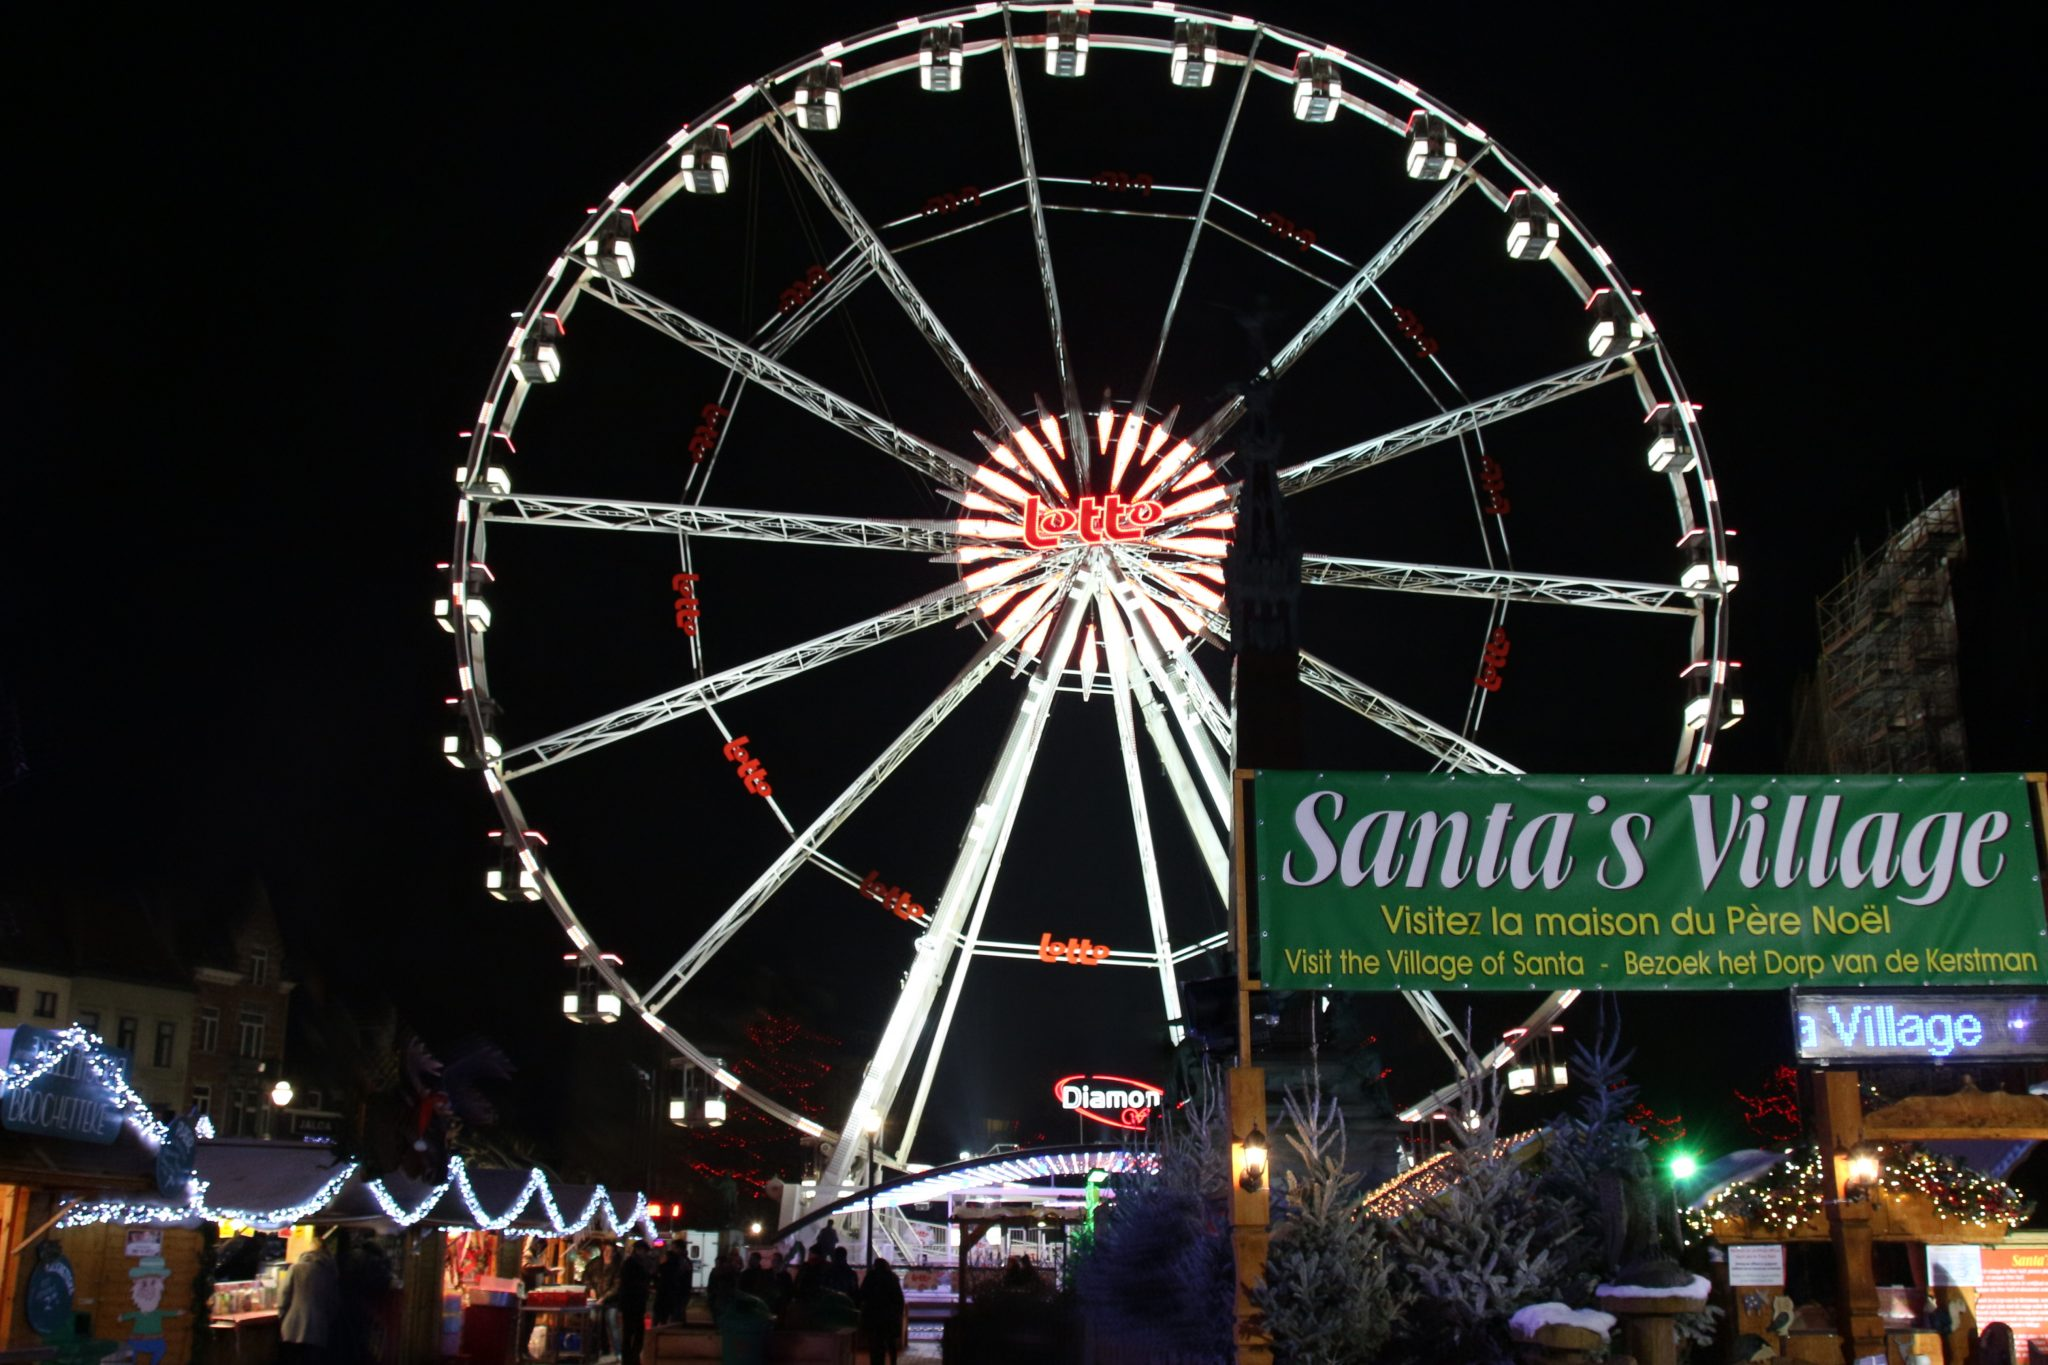 Ferris wheel and Santa's Village at the Christmas Market in Brussels, Belgium